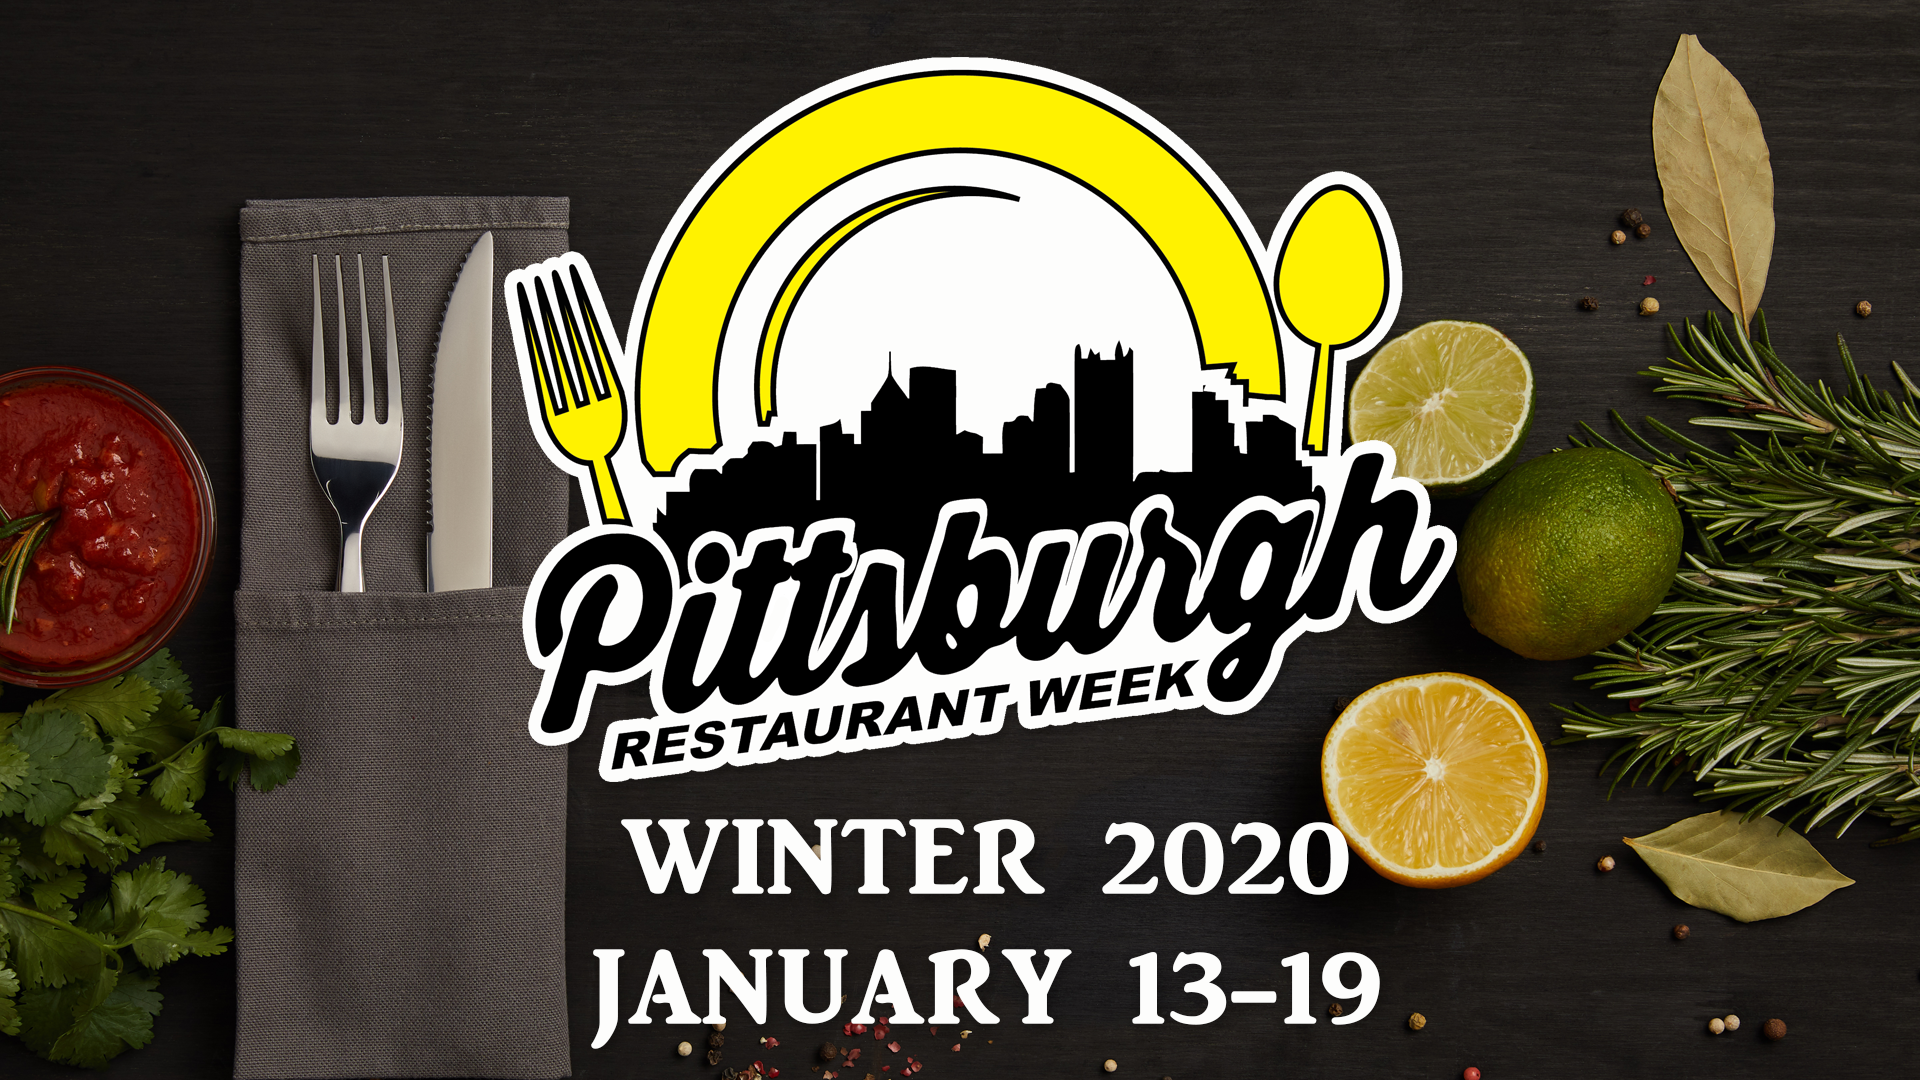 Pittsburgh Restaurant Week Winter 2020